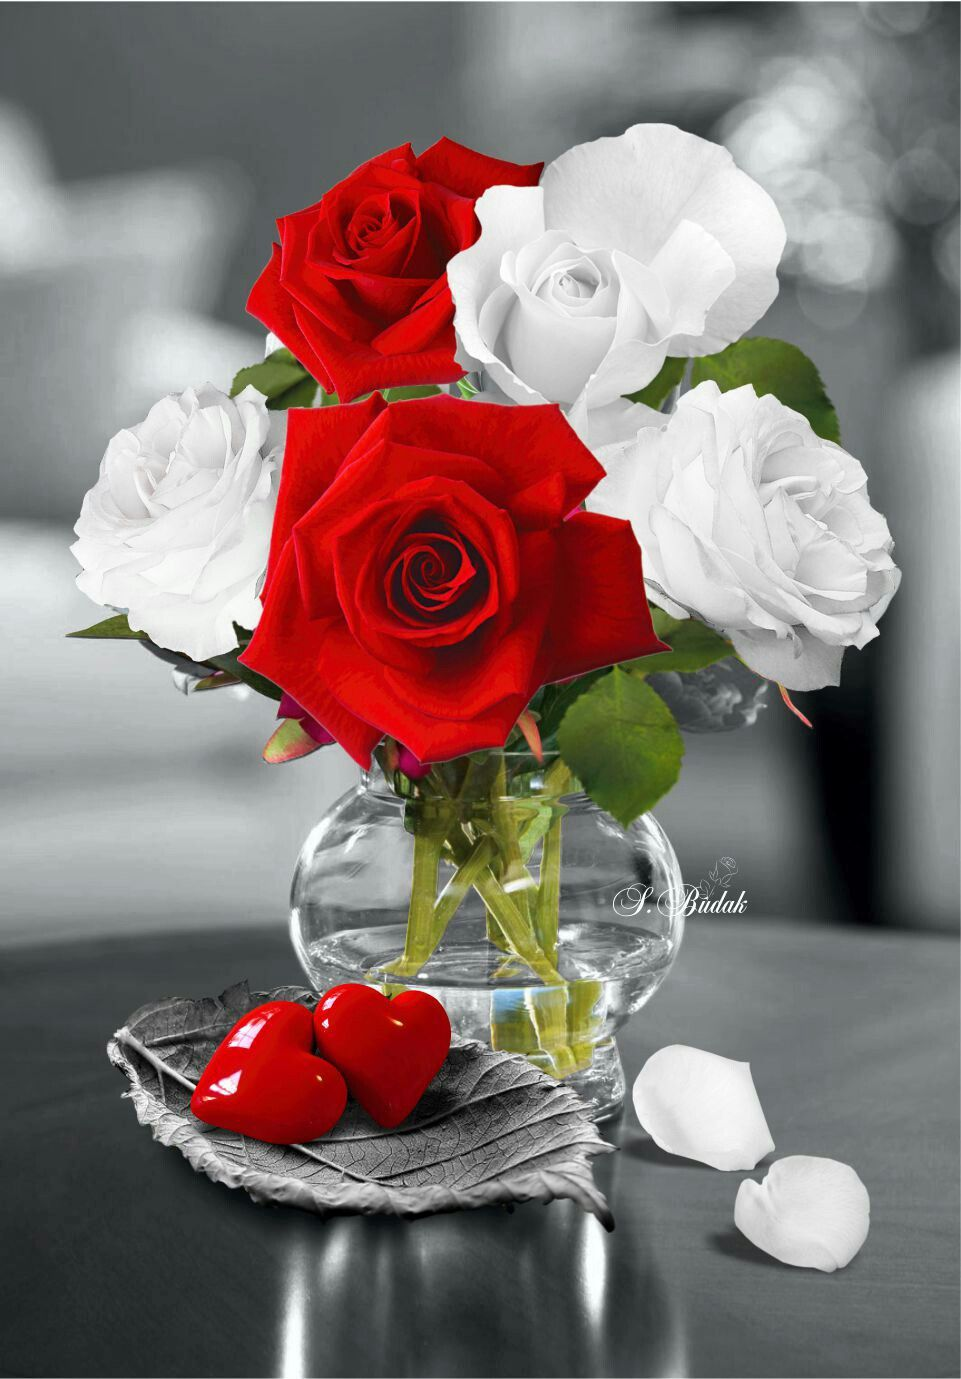 Pin By Chutikern Lor On Flowers Red Roses Wallpaper Beautiful Red Roses Love Flowers